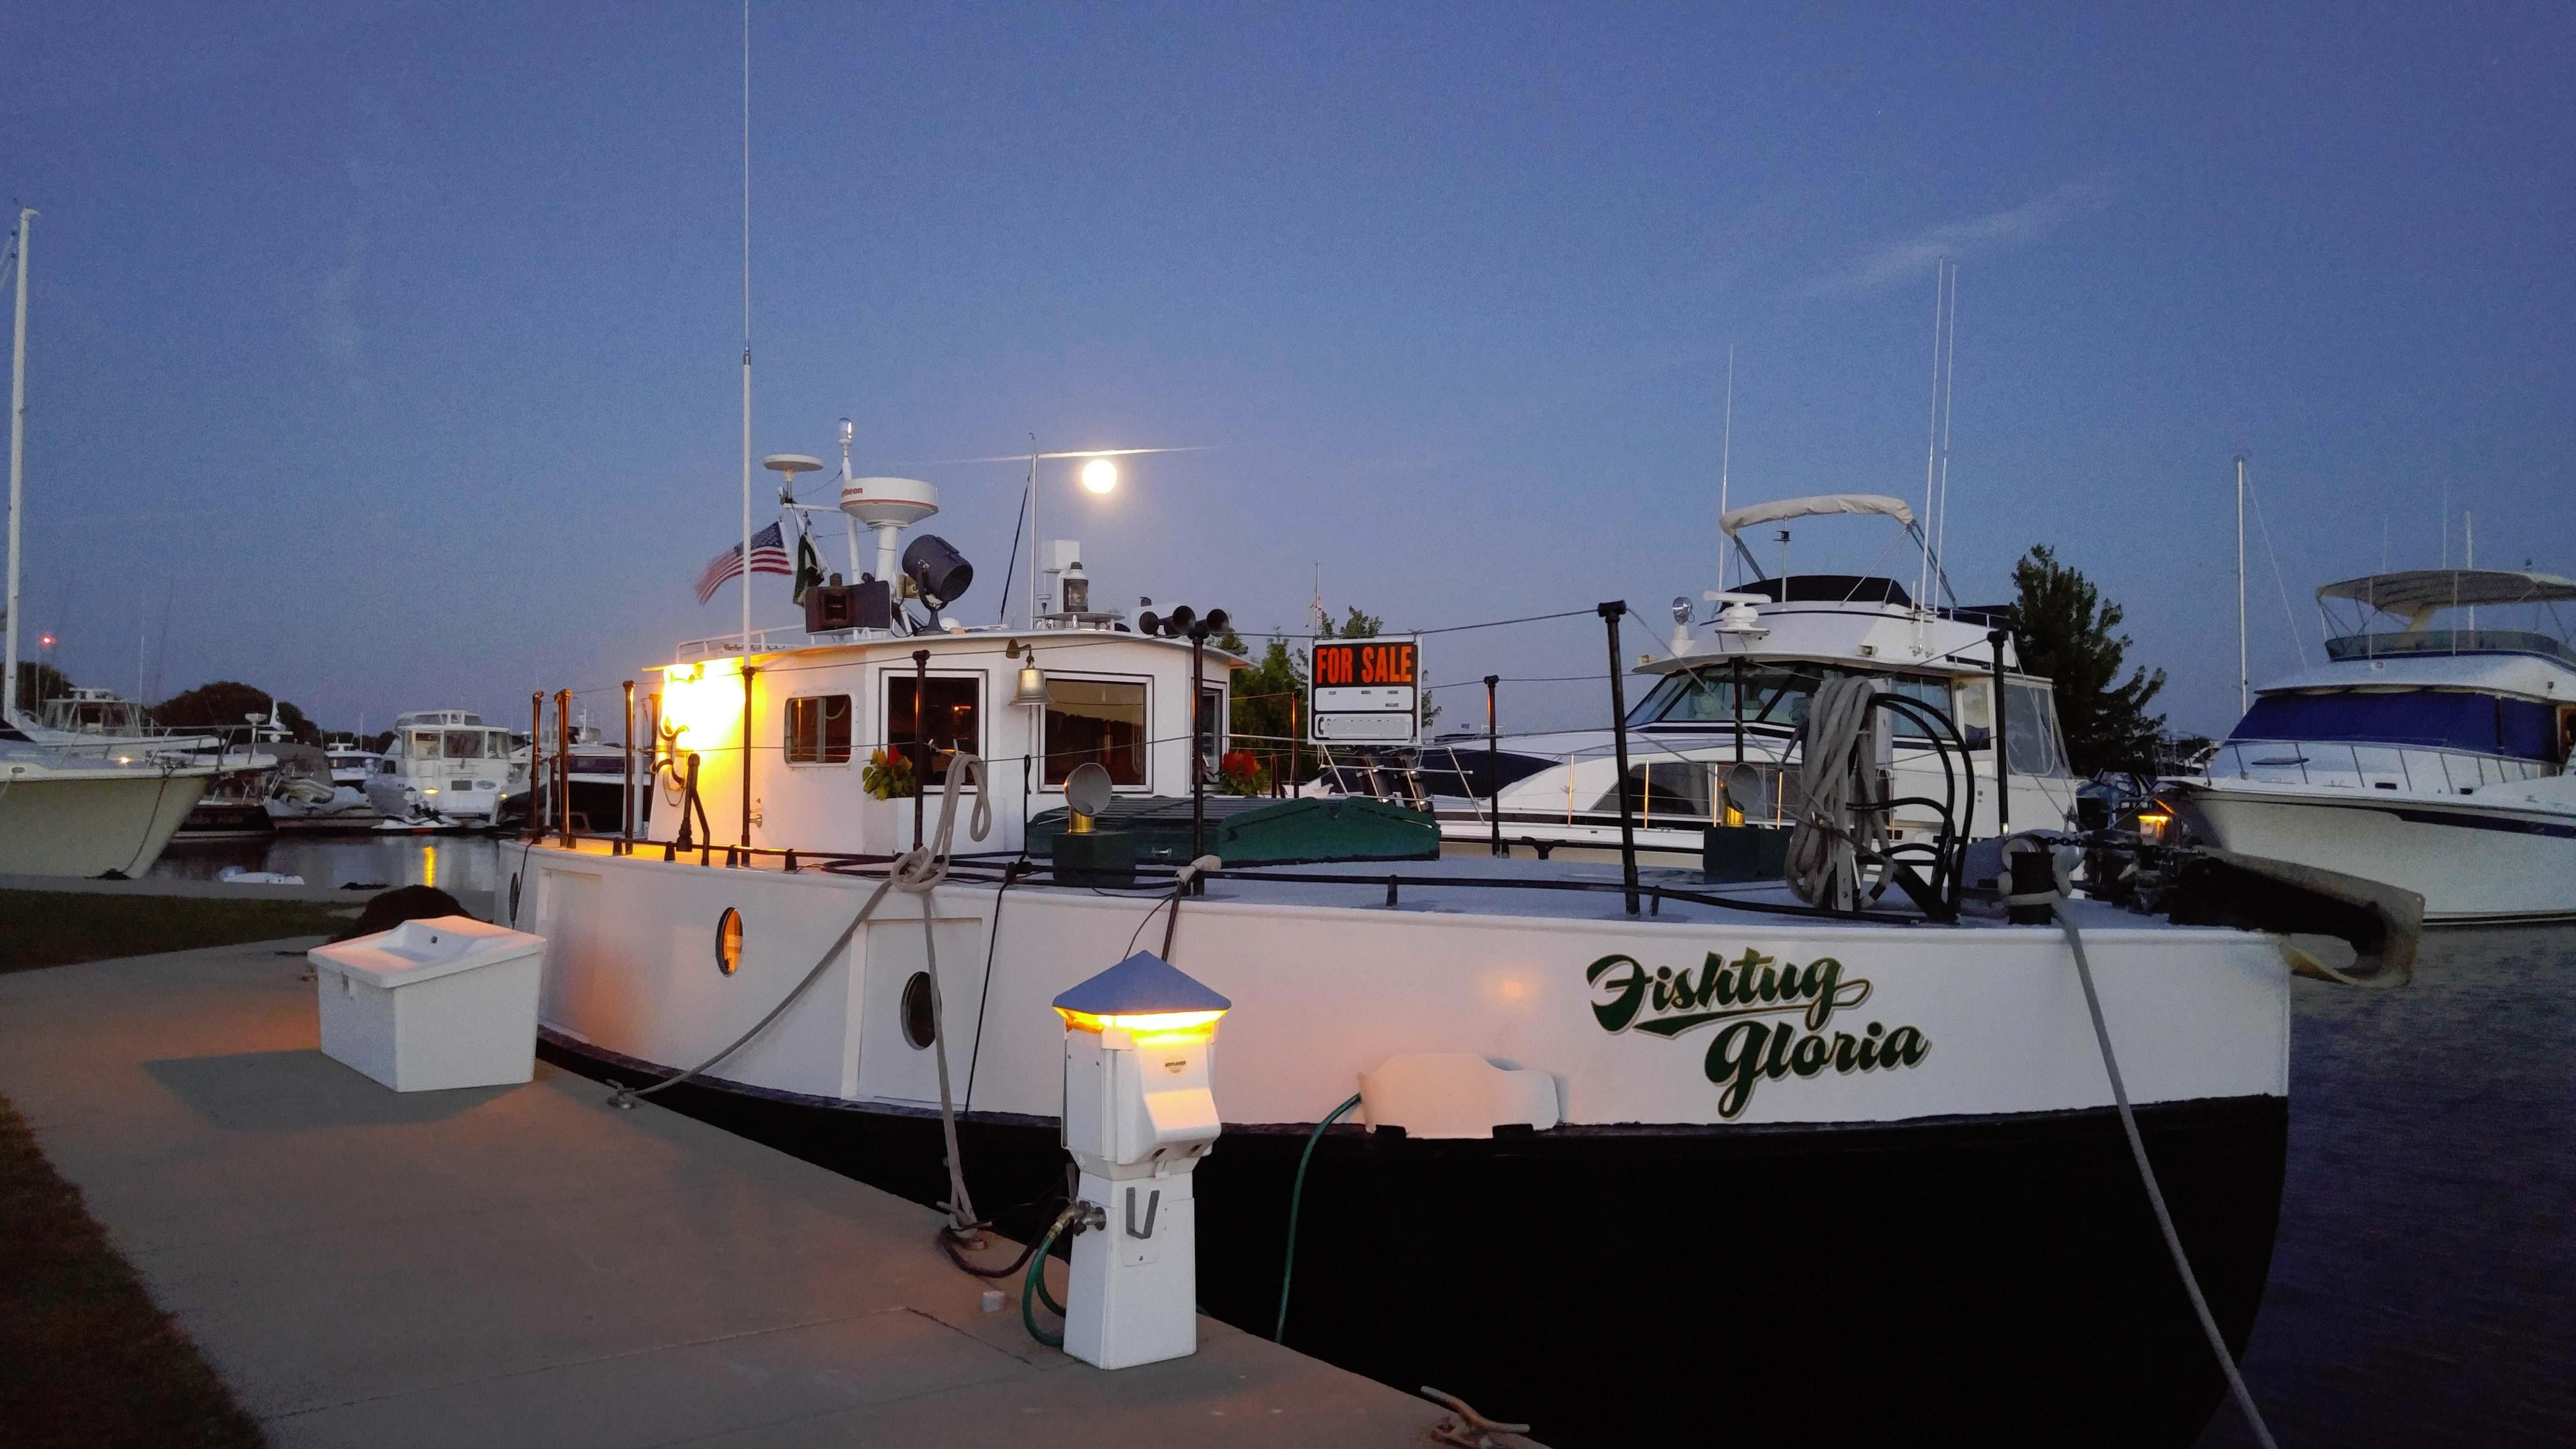 How To Calculate Miles Per Gallon >> 1945 Burger Fish Tug Power Boat For Sale - www.yachtworld.com